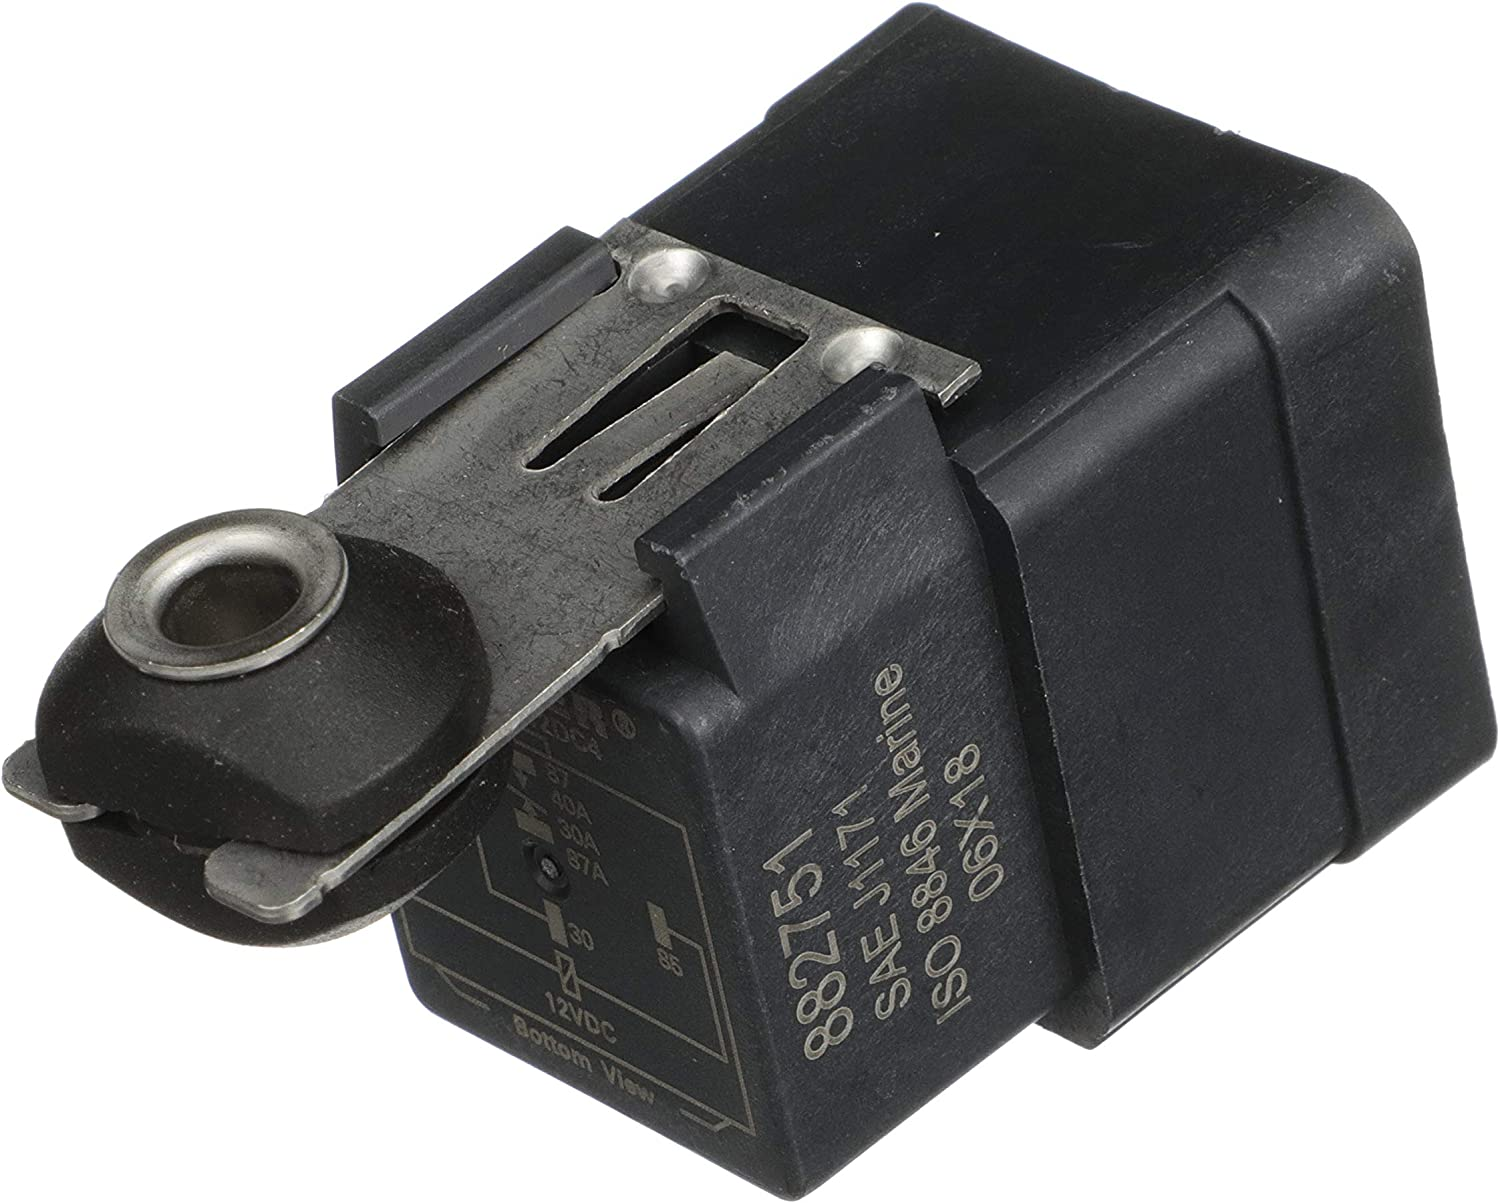 Quicksilver Power Trim Relay 882751A1 - Outboards - for 115 HP Mercury or Mariner 4-Stroke Outboards